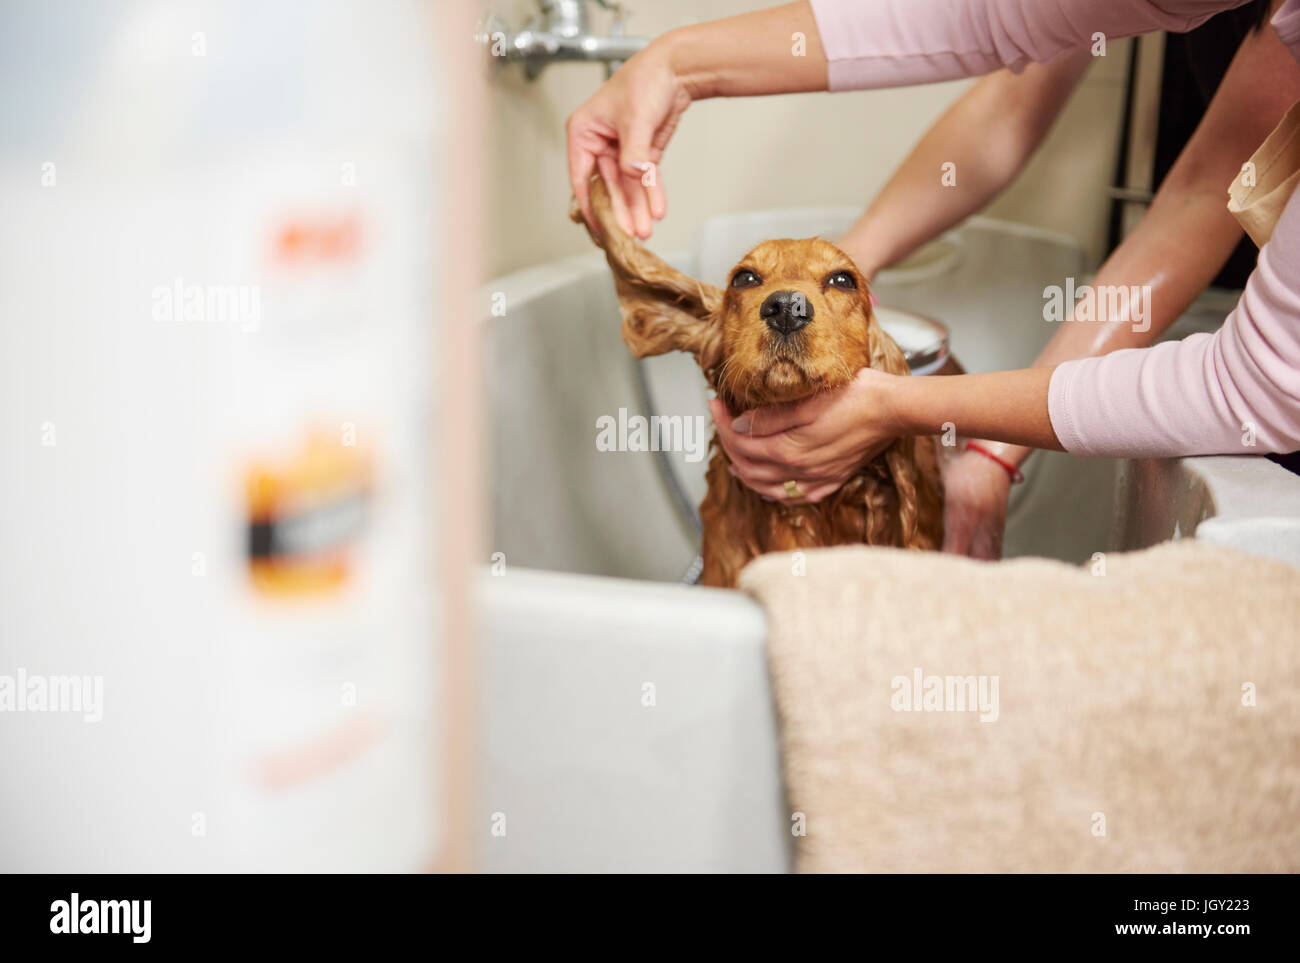 Female groomers showering cocker spaniel in bath at dog grooming salon - Stock Image